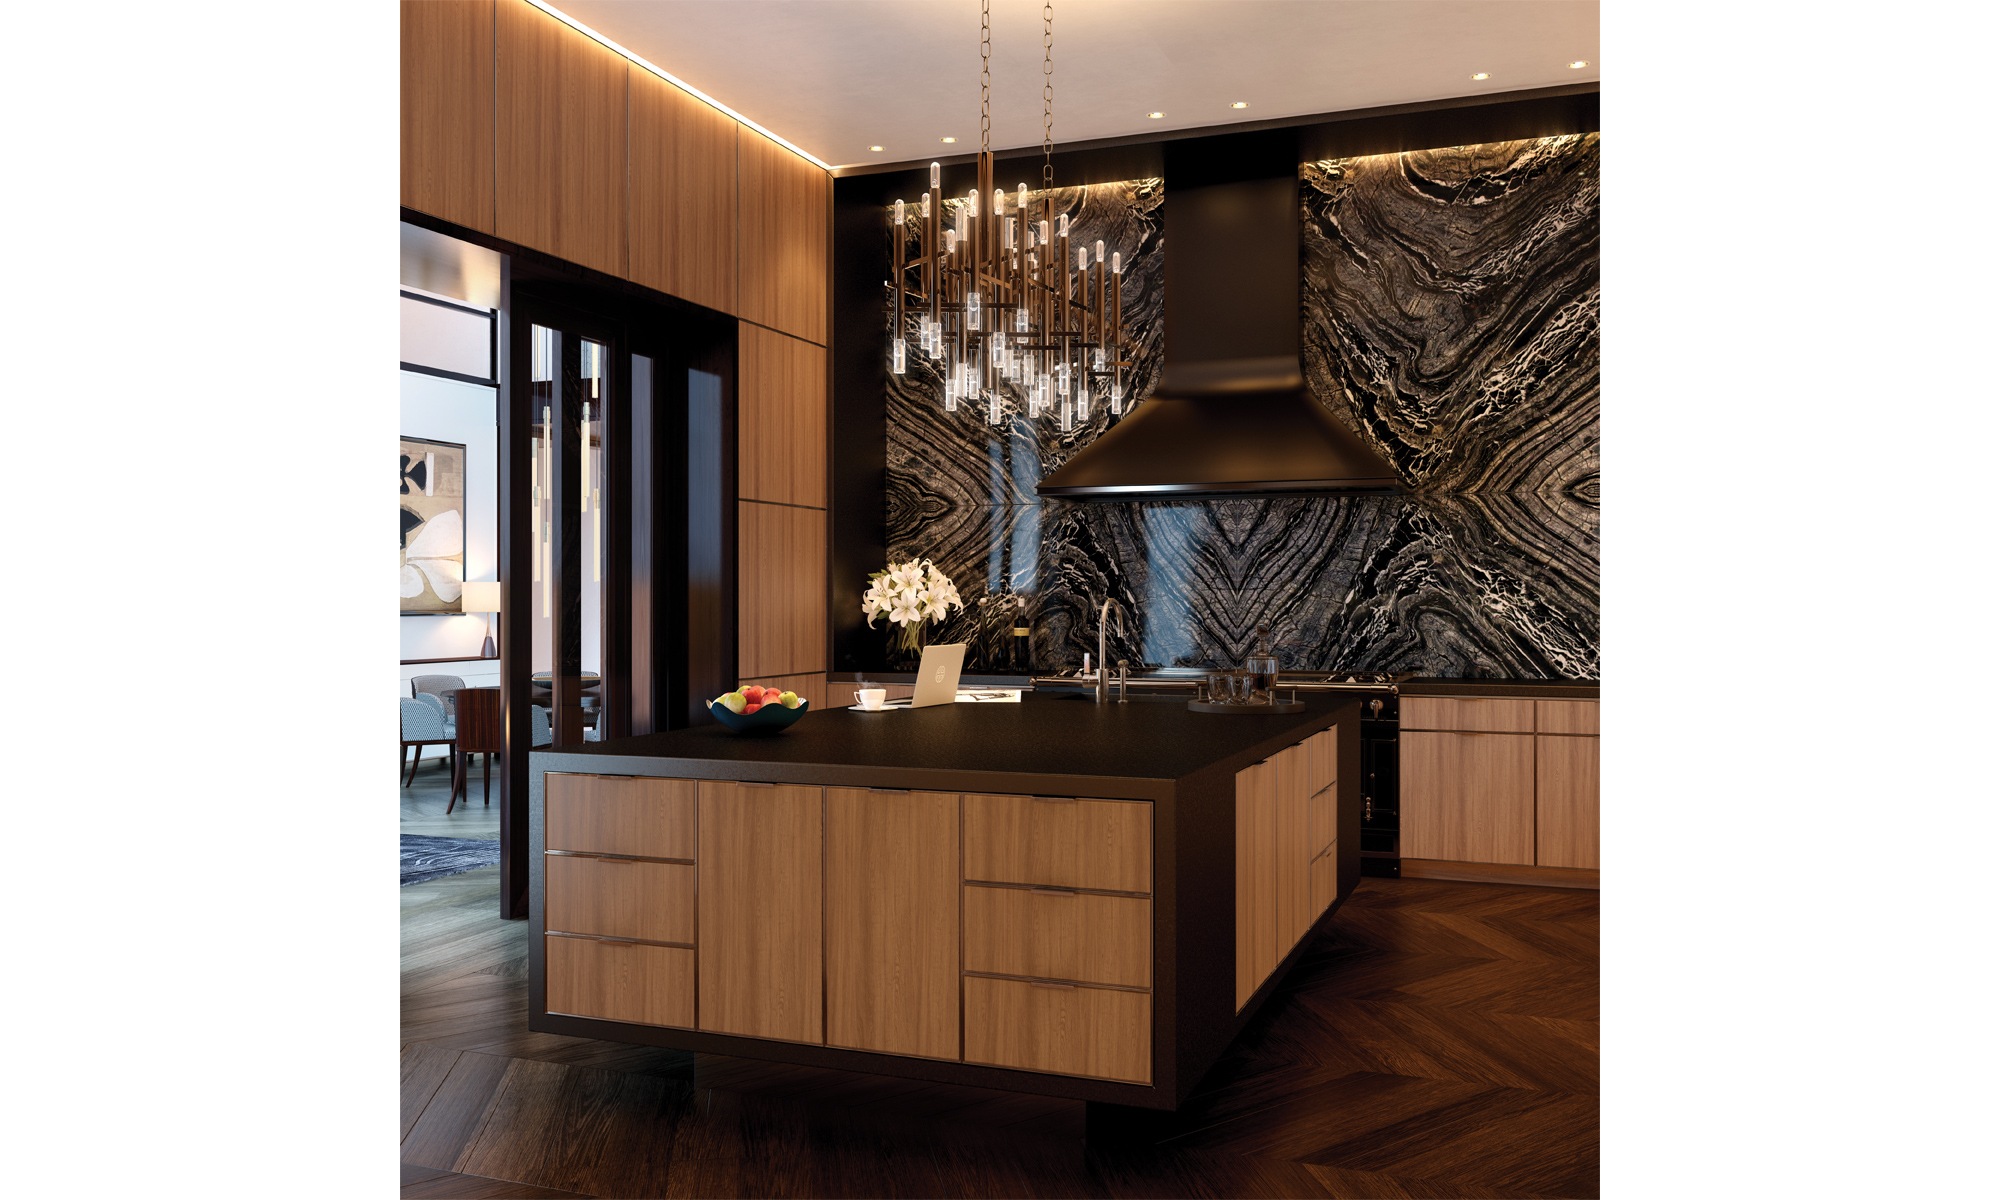 Artist's impression of apartment kitchen with unit-to-ceiling Kenya Black marble splashback.